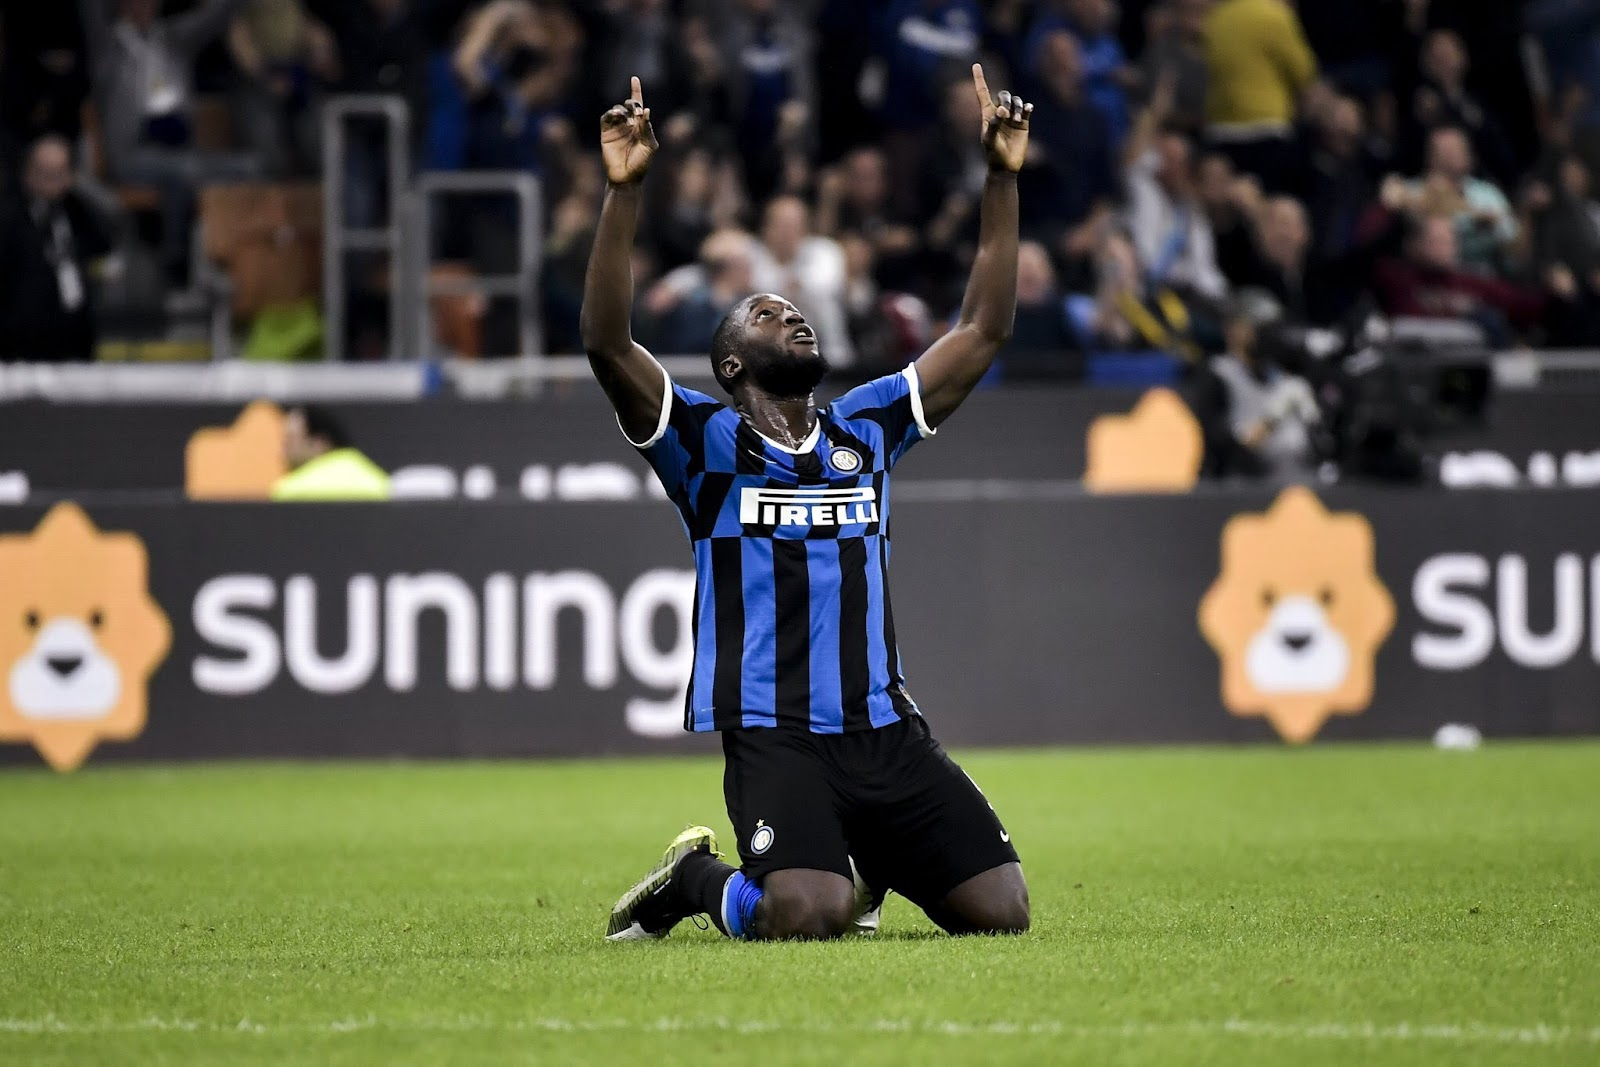 Inter Milan striker Romelu Lukaku celebrates scoring against Brescia in the Italian Serie A